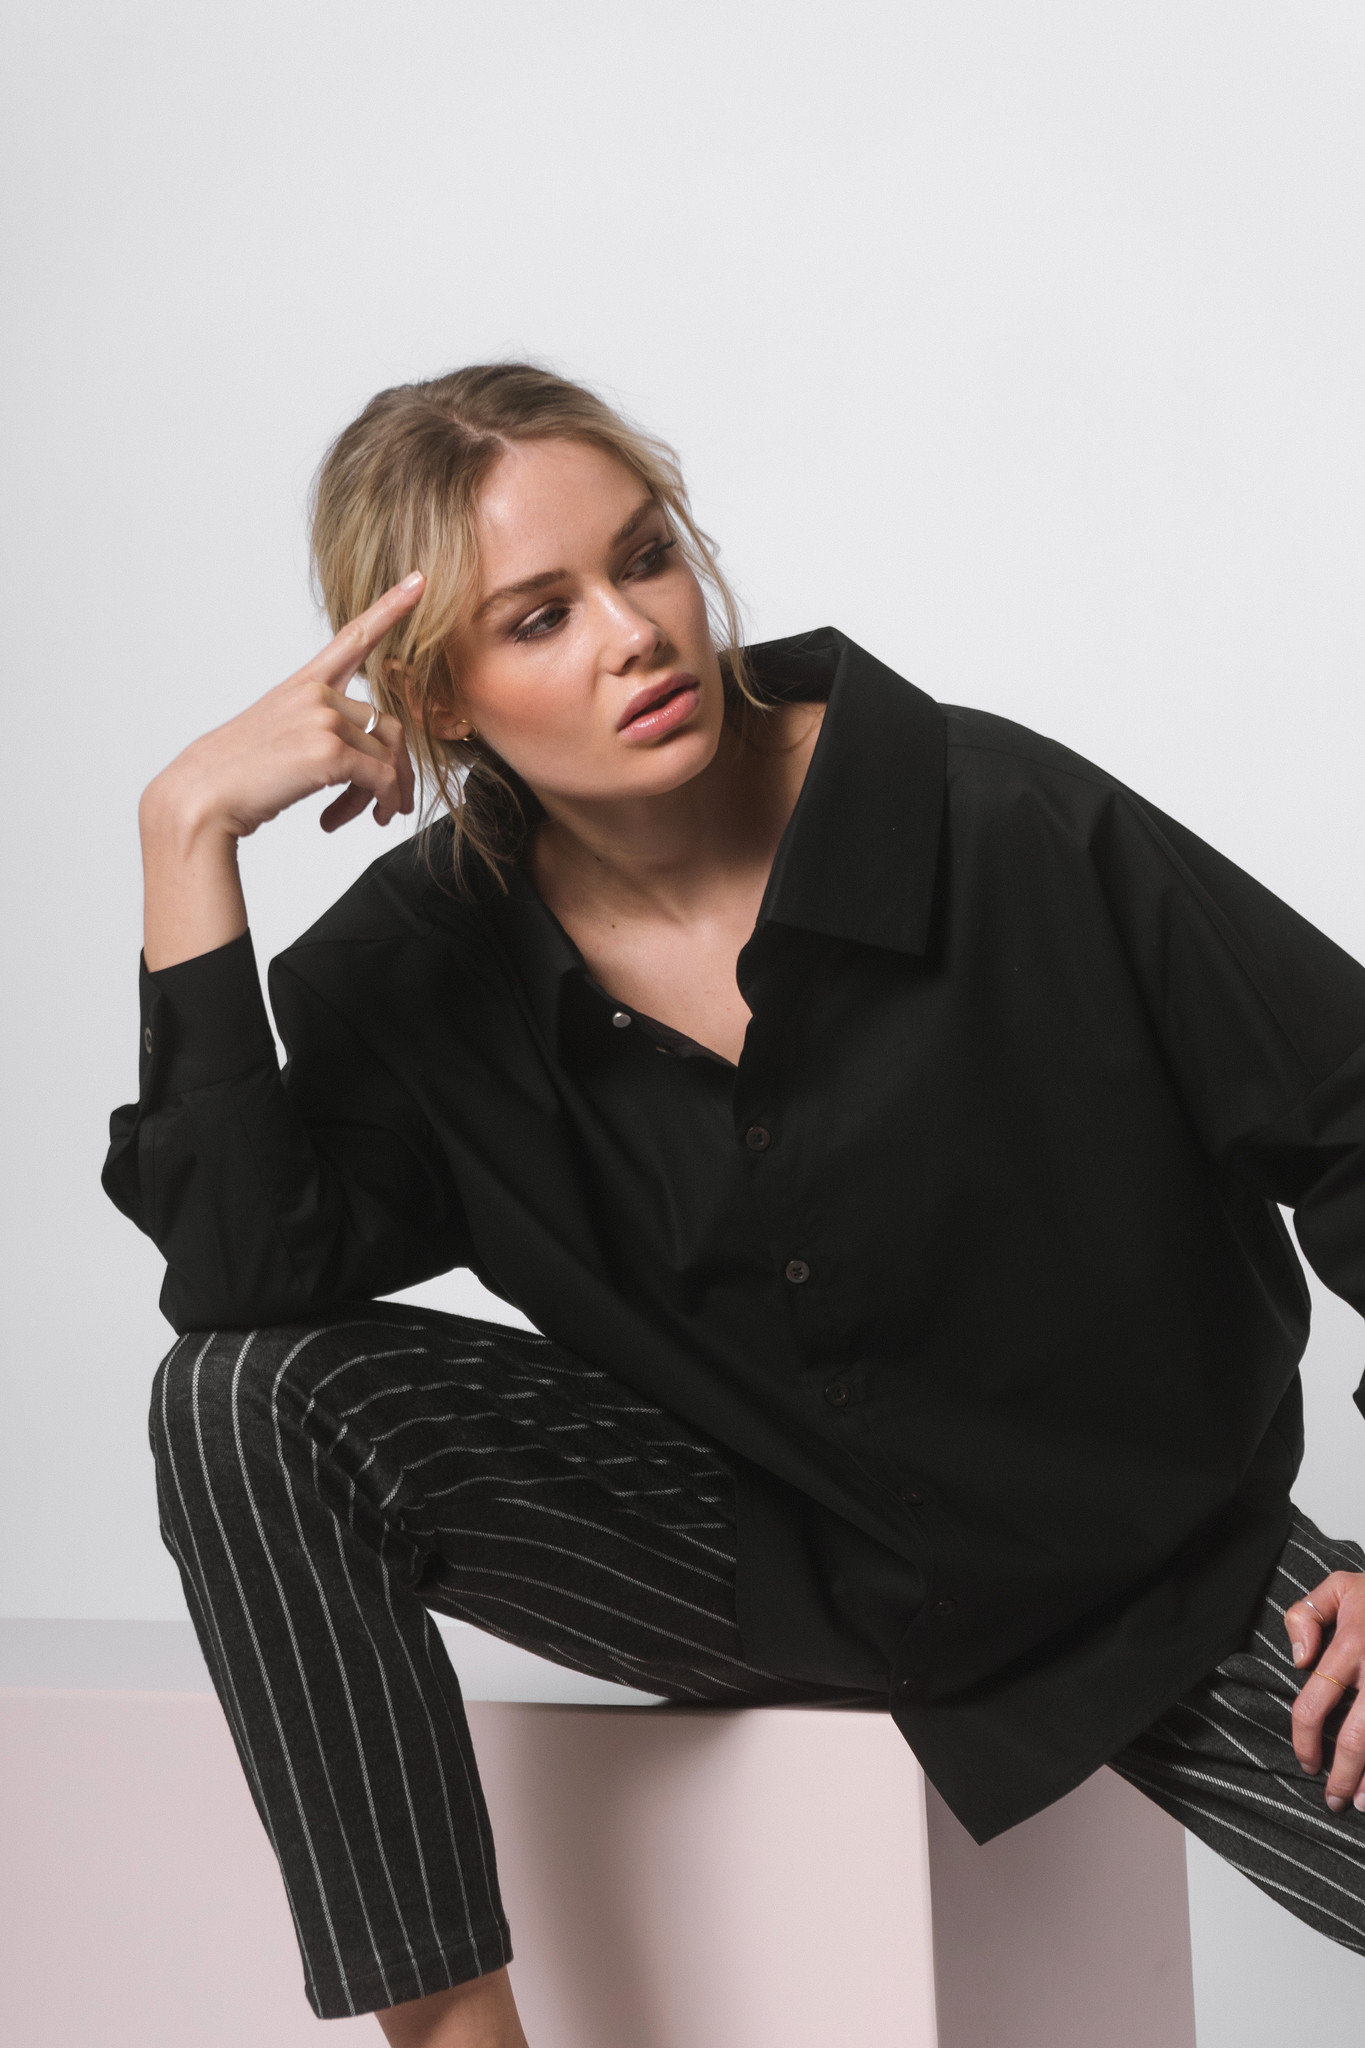 Statement blouse made of organic cotton - black - Copy-1